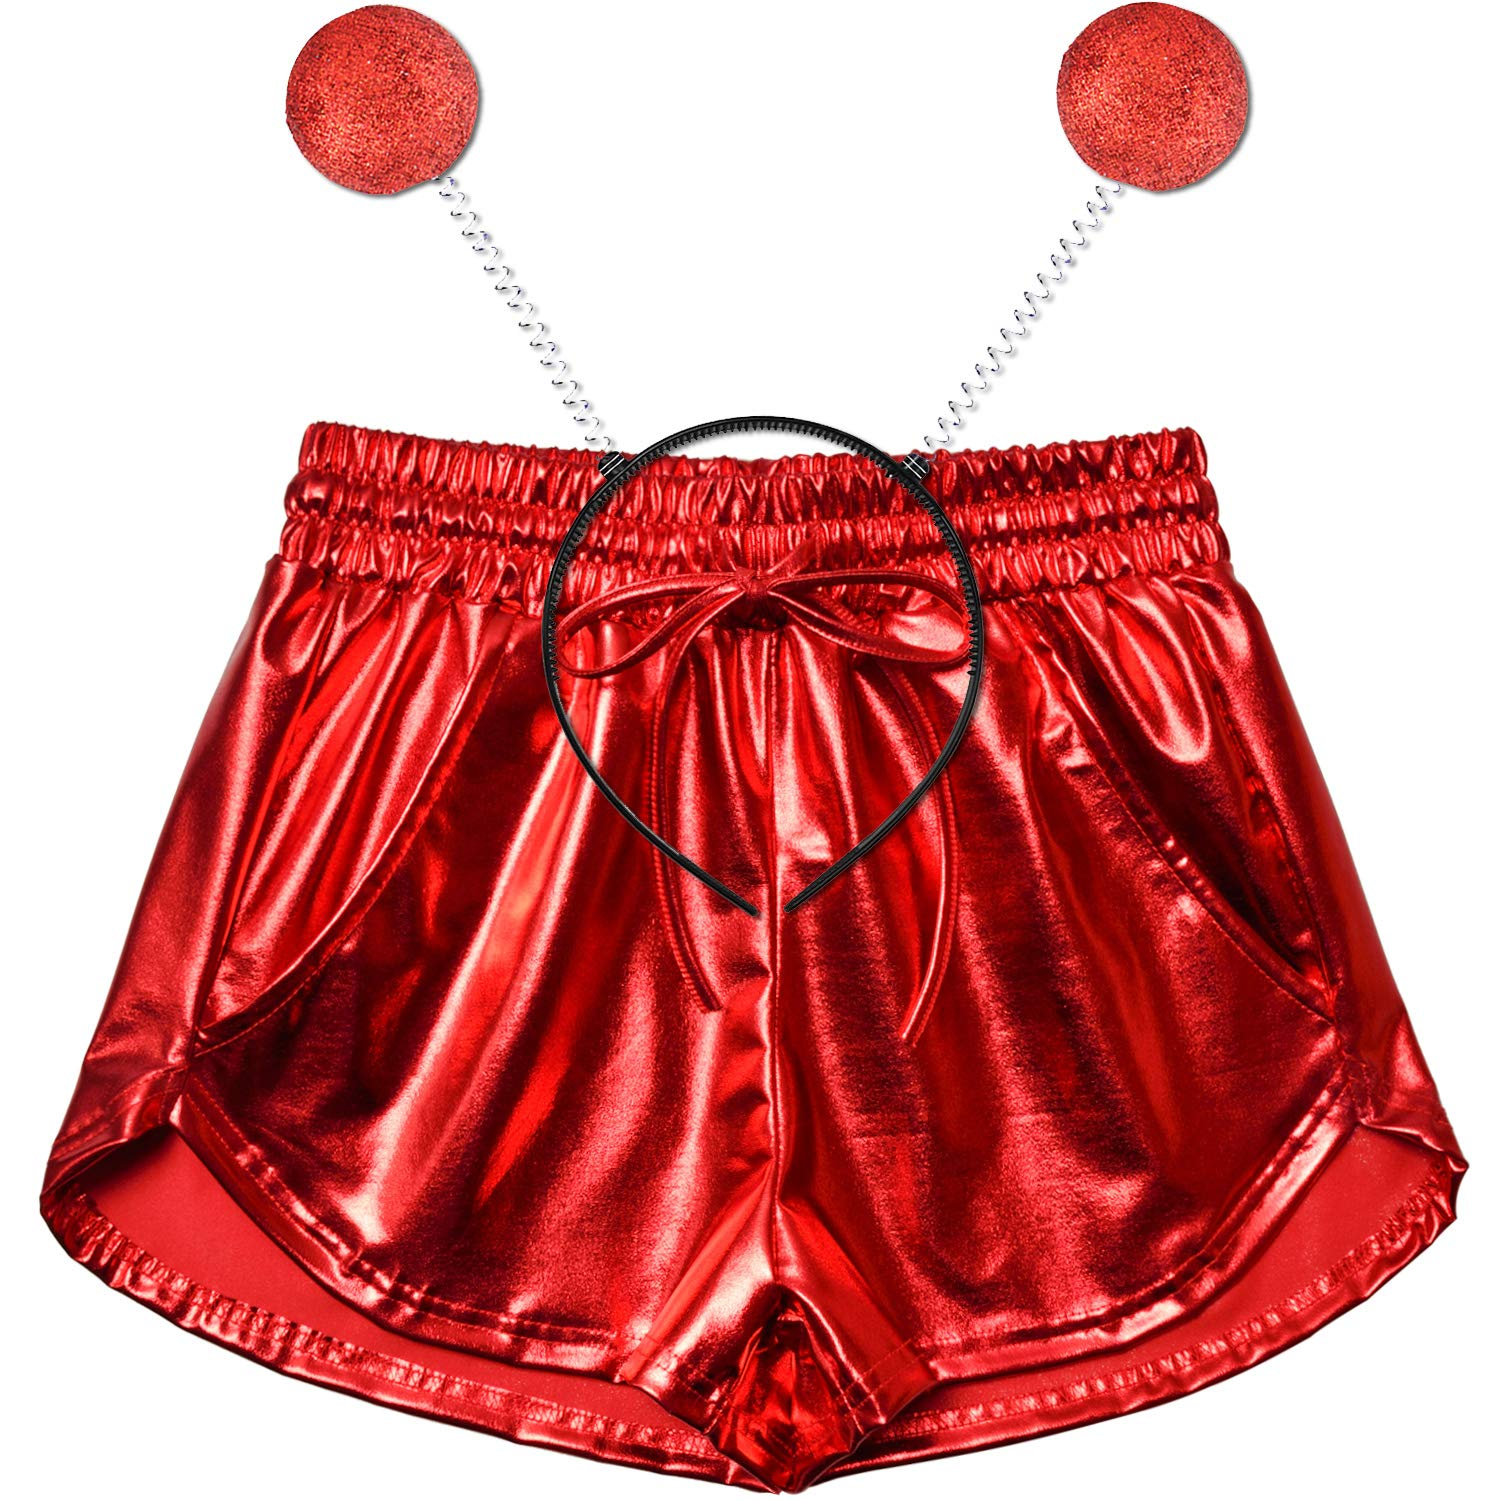 Red Perfashion Women's Metallic Shorts Summer Sparkly Hot Yoga Outfit Shiny Short Pants